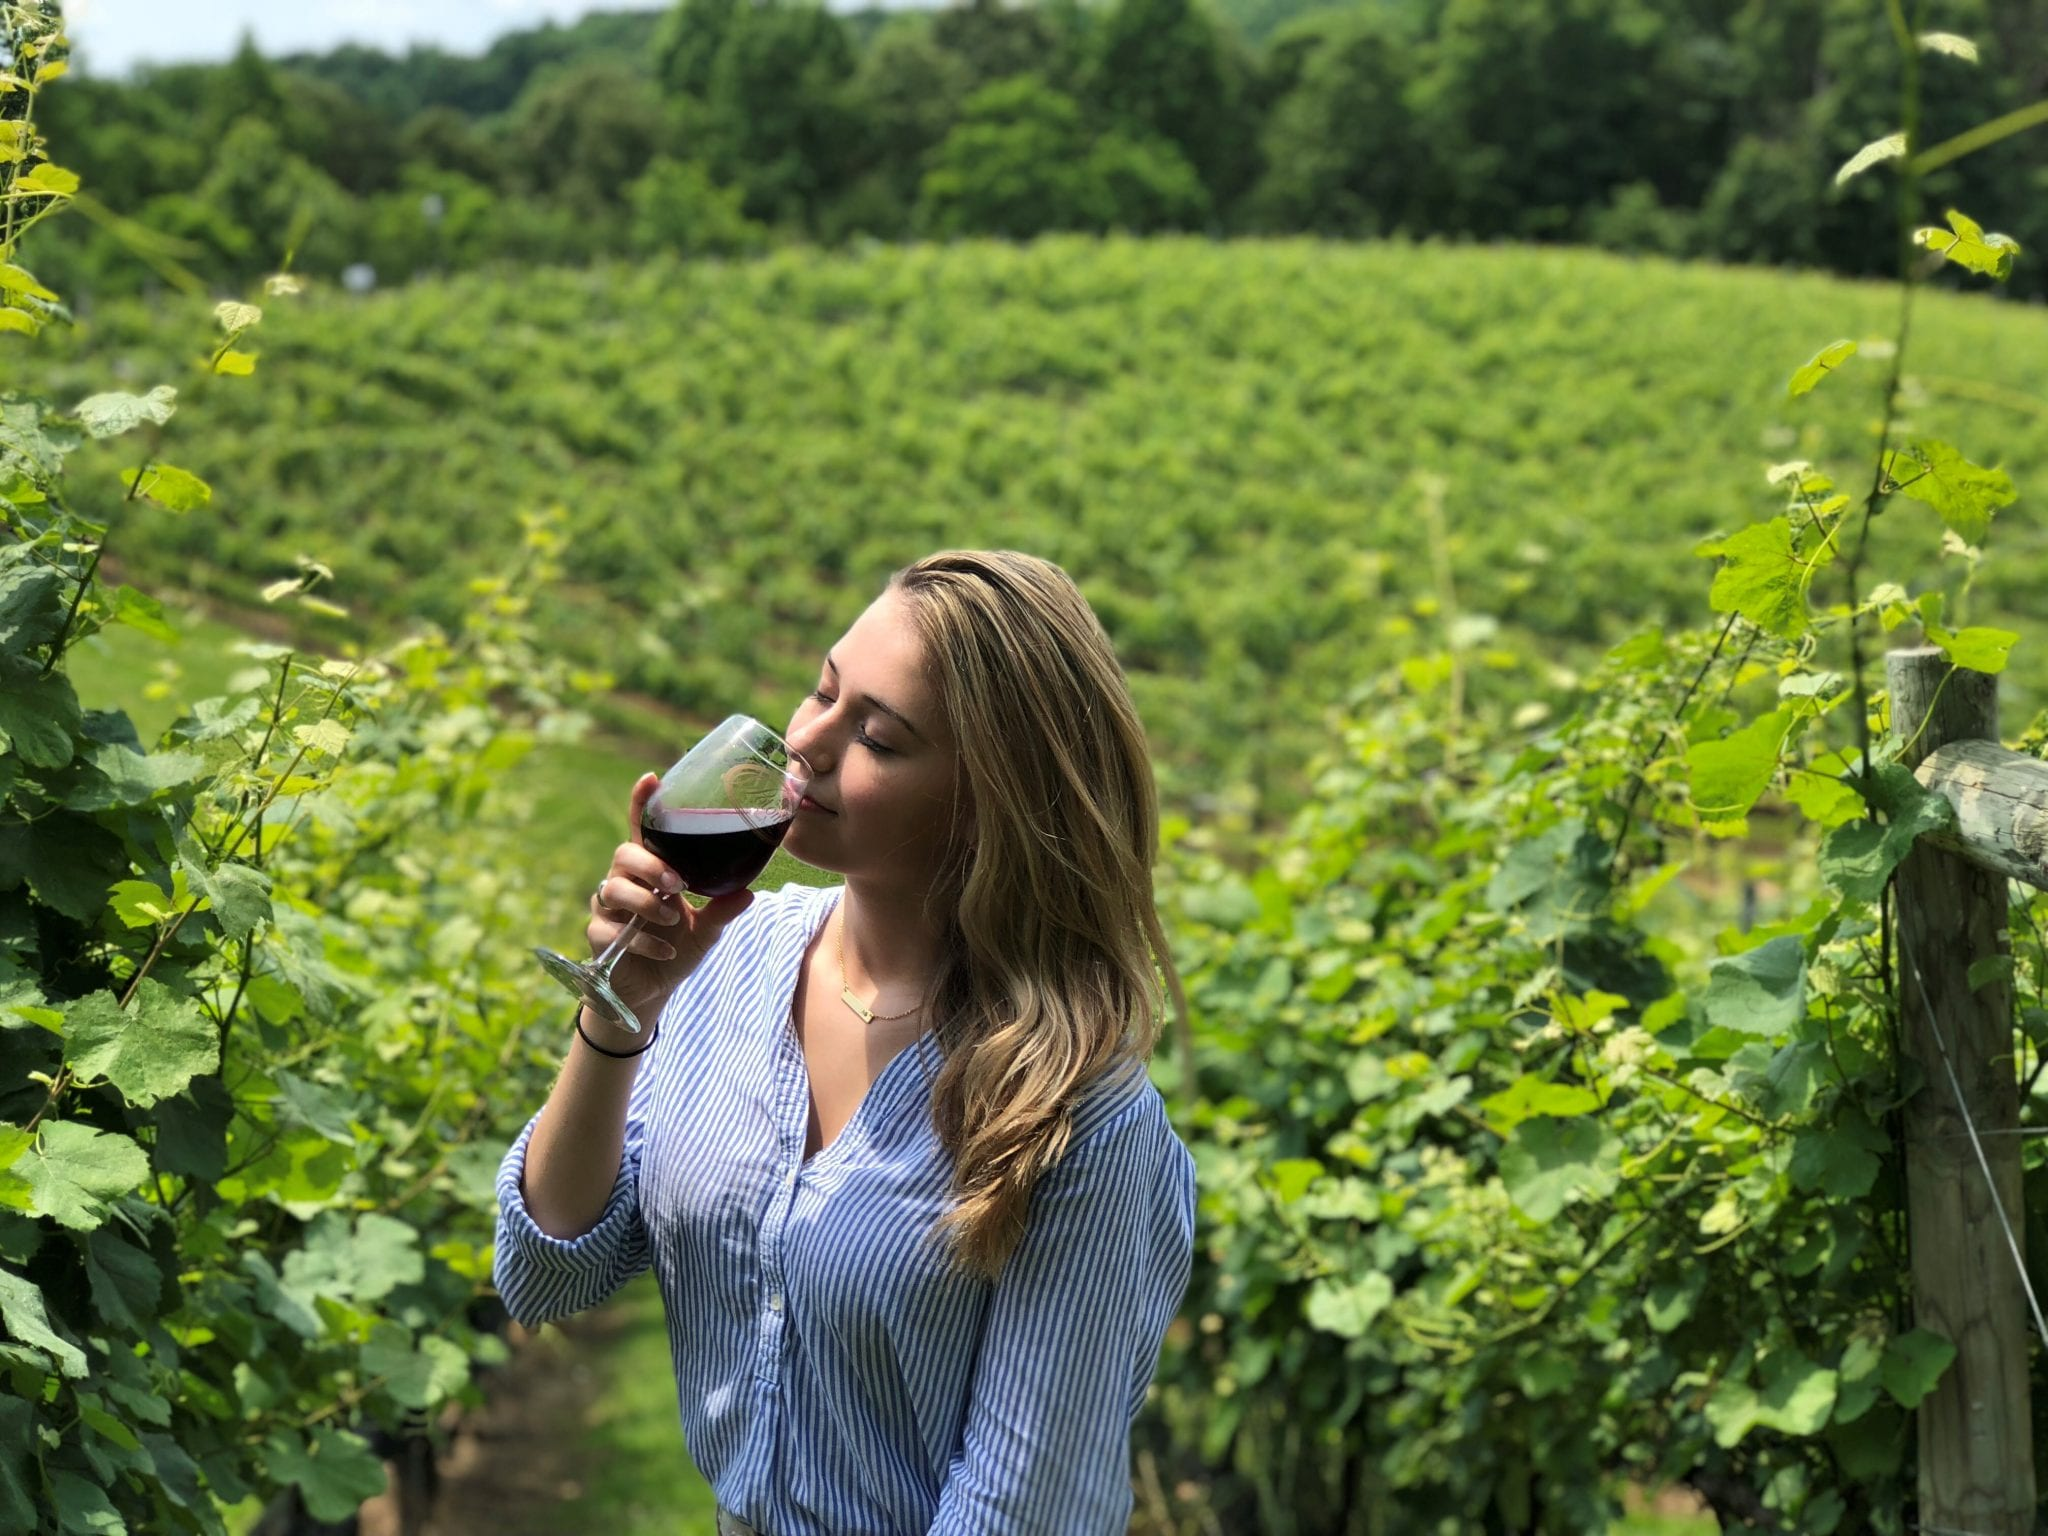 Sniffing wine in the vineyard